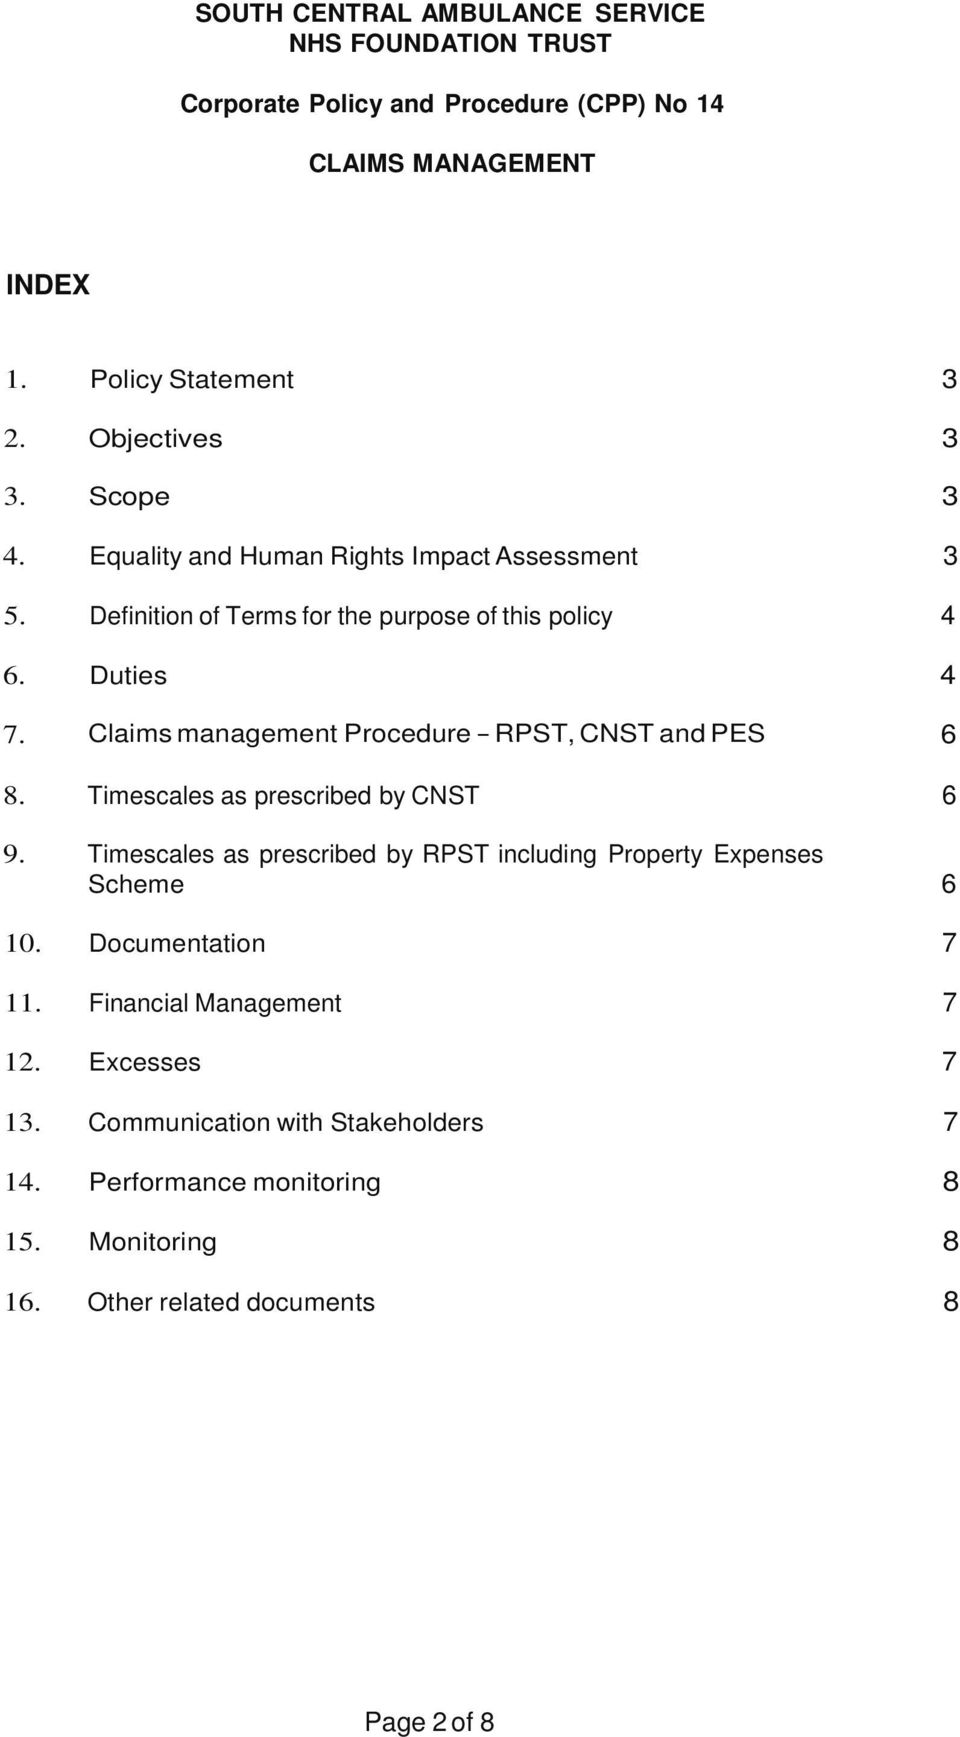 Claims management Procedure - RPST, CNST and PES 6 8. Timescales as prescribed by CNST 6 9.